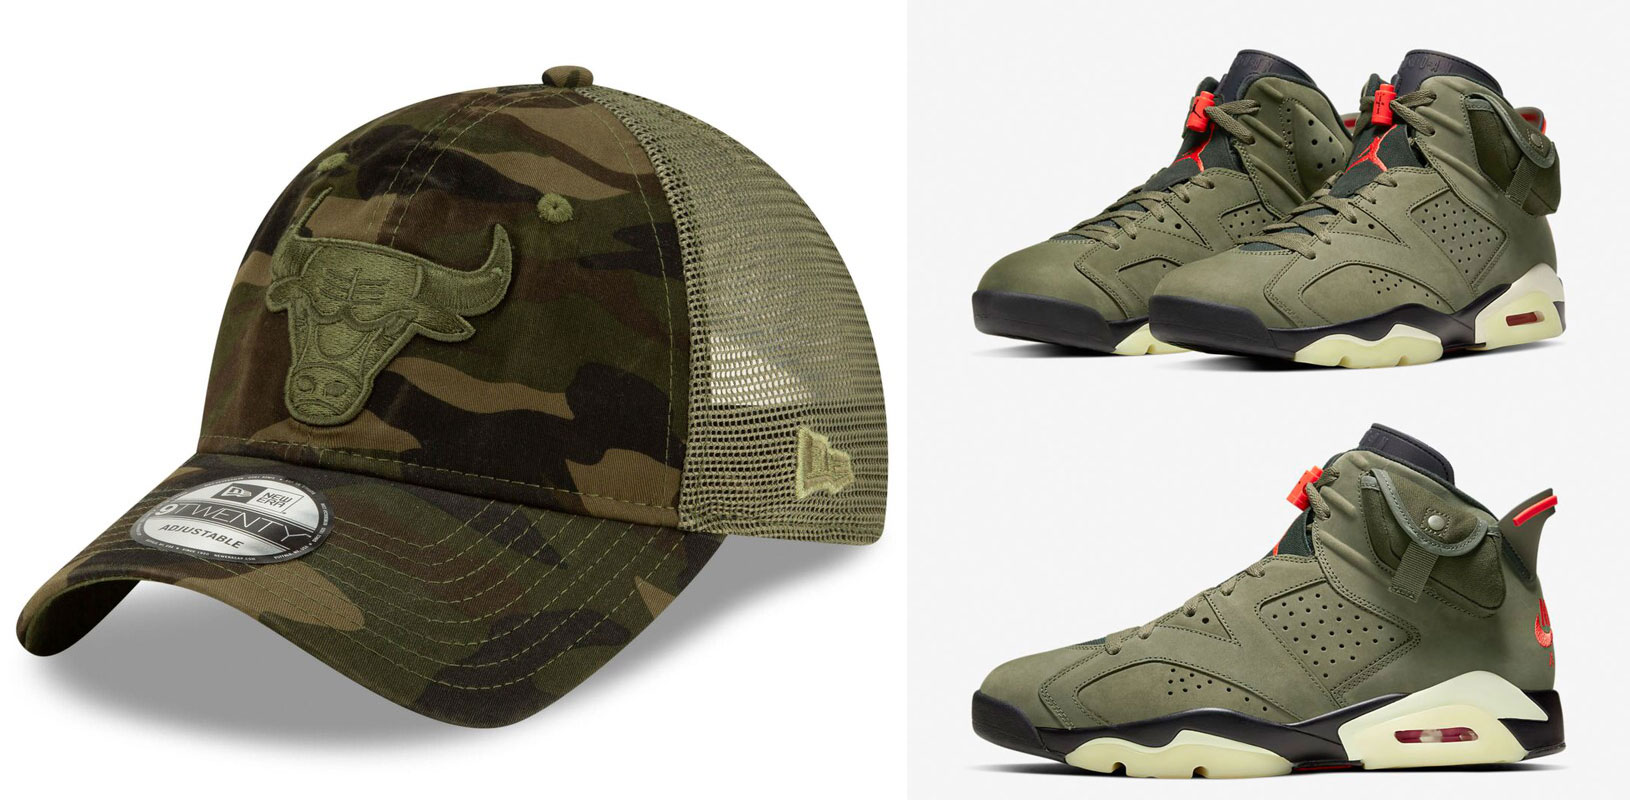 travis-scott-air-jordan-6-olive-bulls-hat-match-4